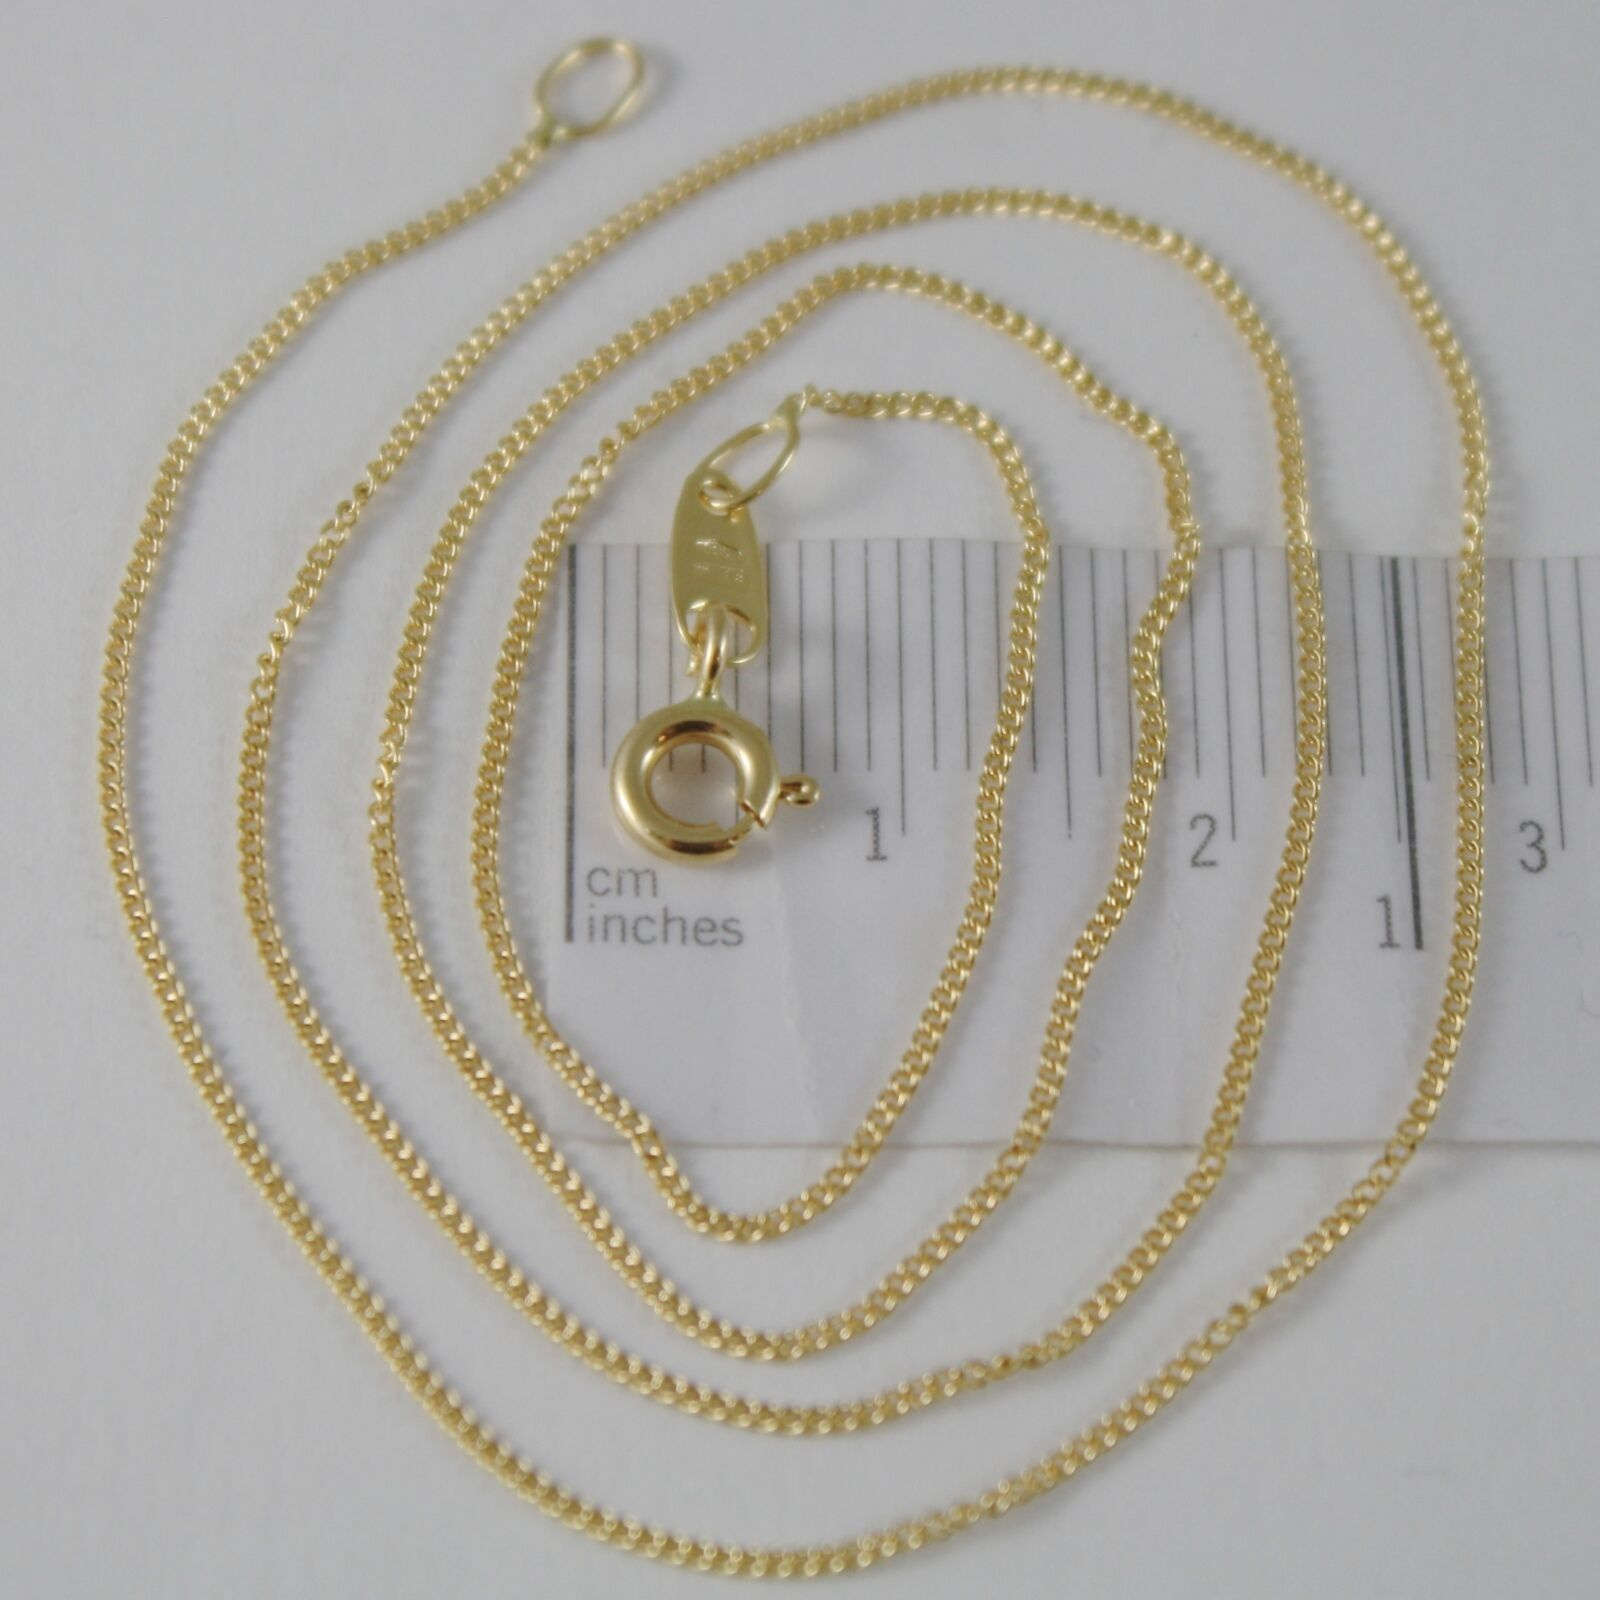 18K YELLOW GOLD CHAIN 17.7 MINI CUBAN CURB GOURMETTE LINK 0.9 MM, MADE IN ITALY